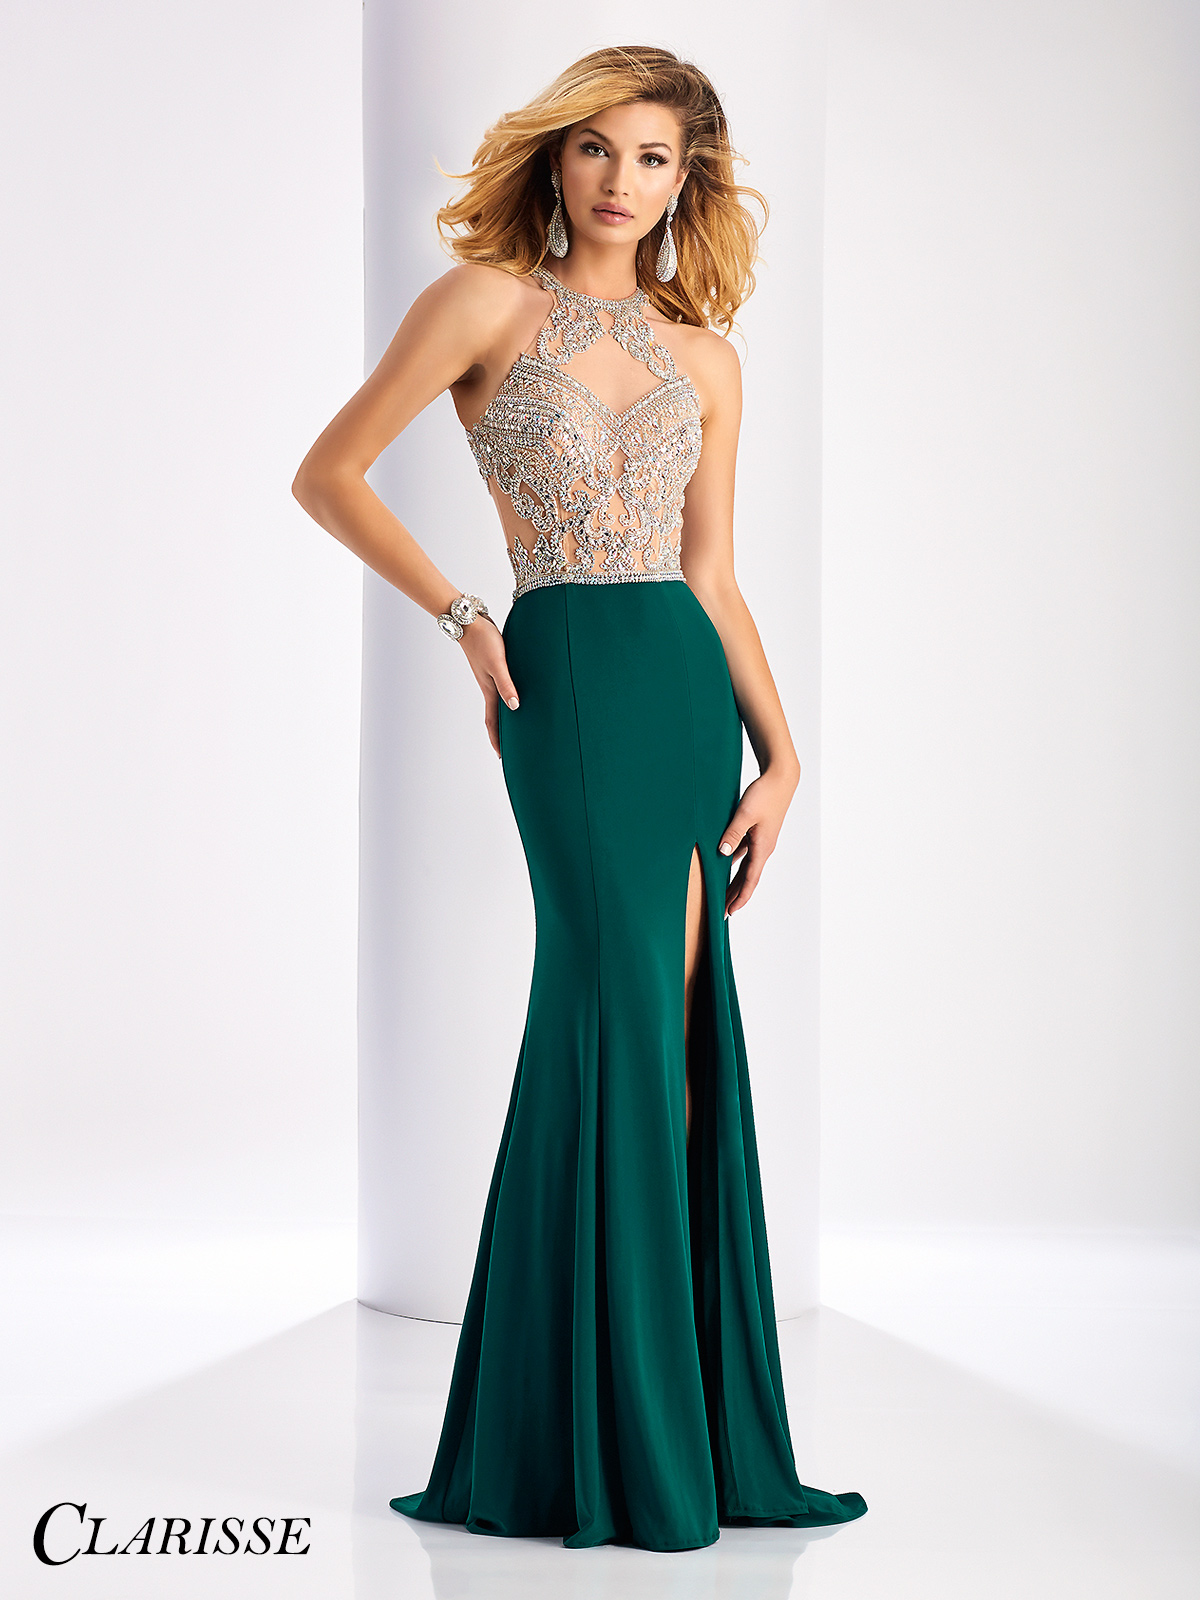 Clarisse Prom Dress 3184 | Promgirl.net